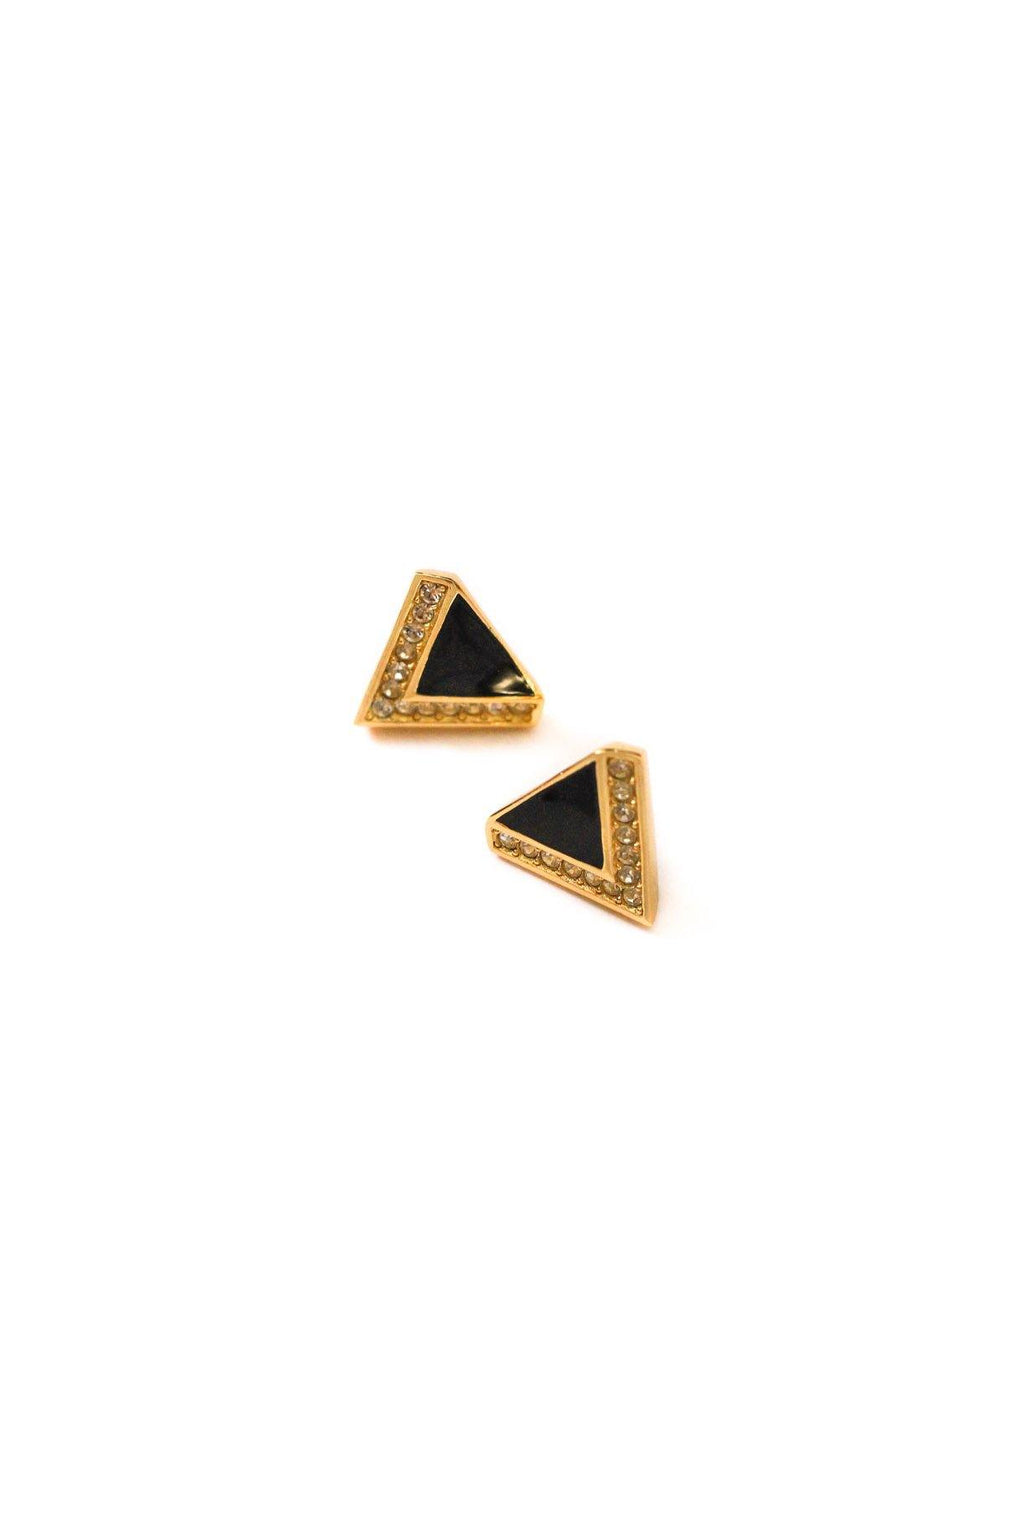 Rhinestone Triangle Pierced Earrings